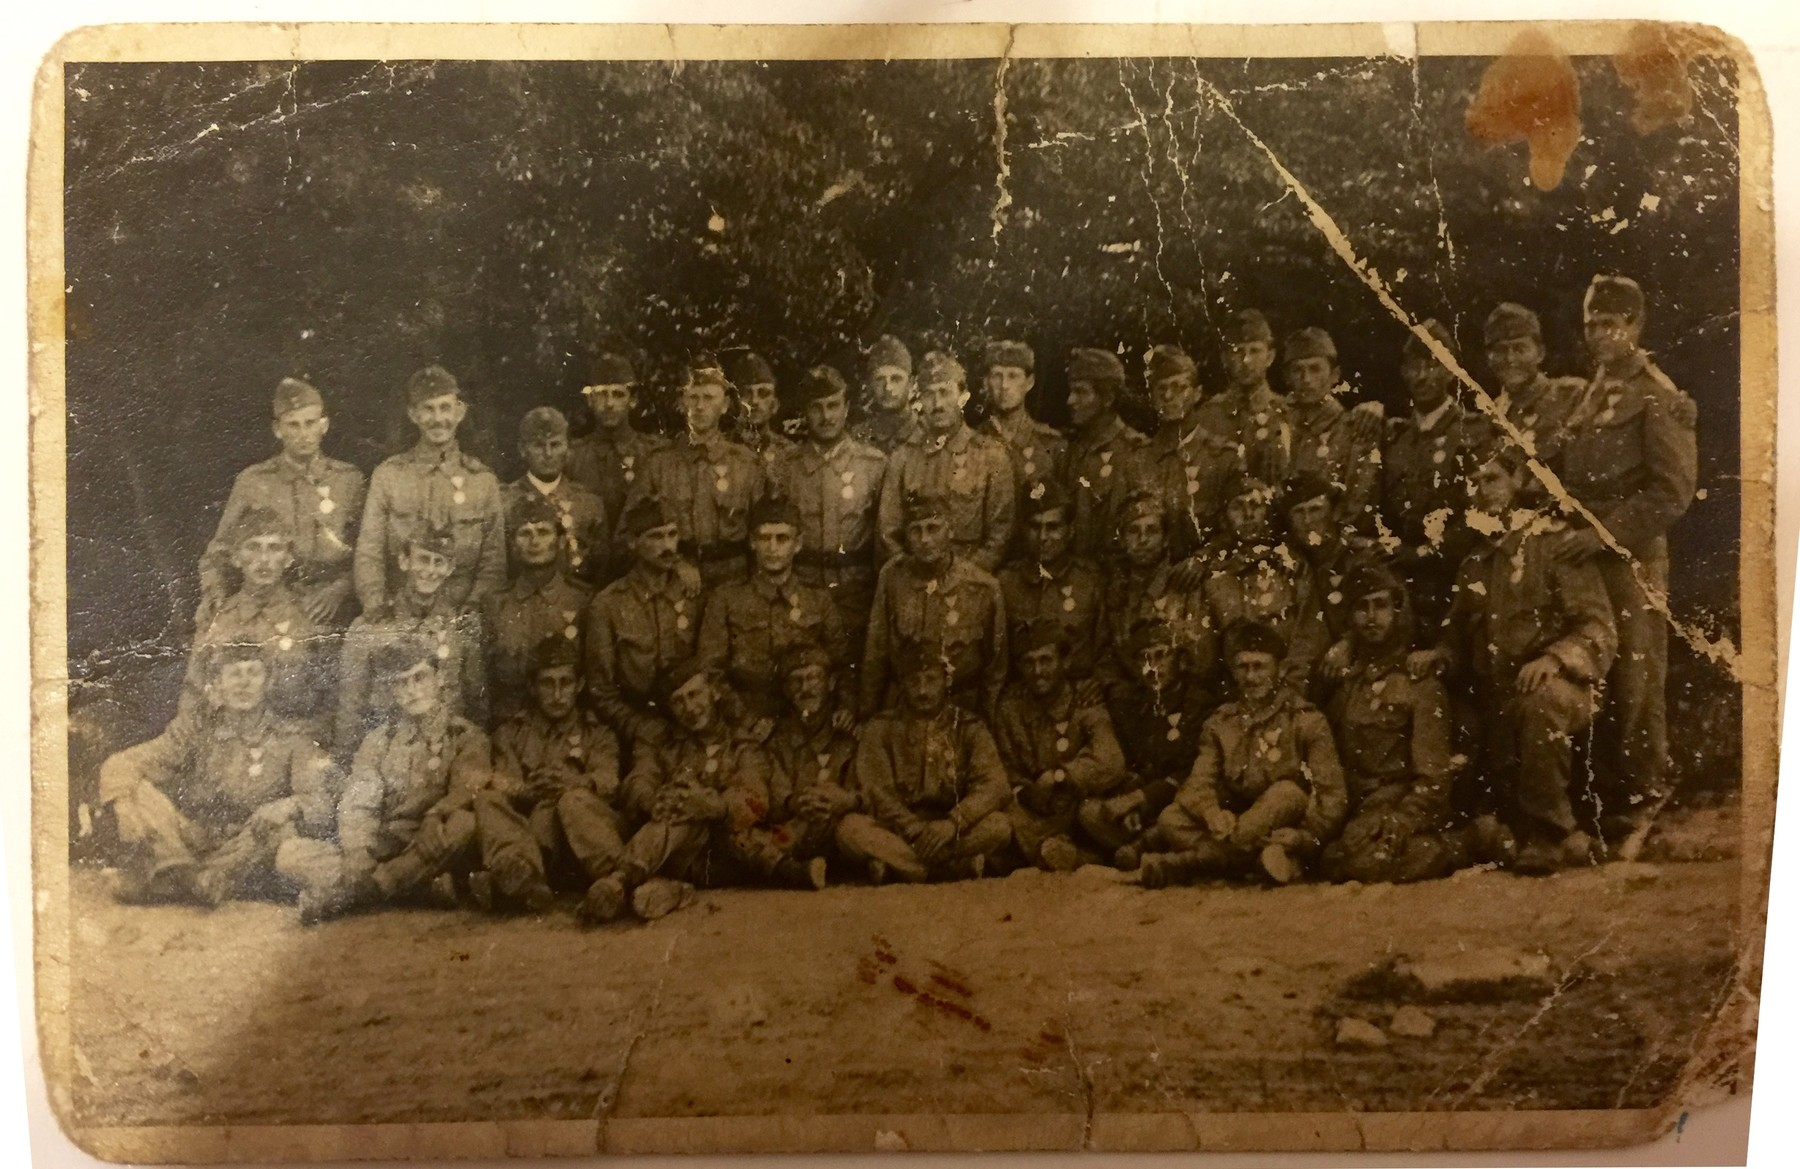 Group portrait of Hungarian soldiers, both Jewish and non-Jewish.  Israel Fried is seated on the ground, first on the right.  He served as a sharp shooter.